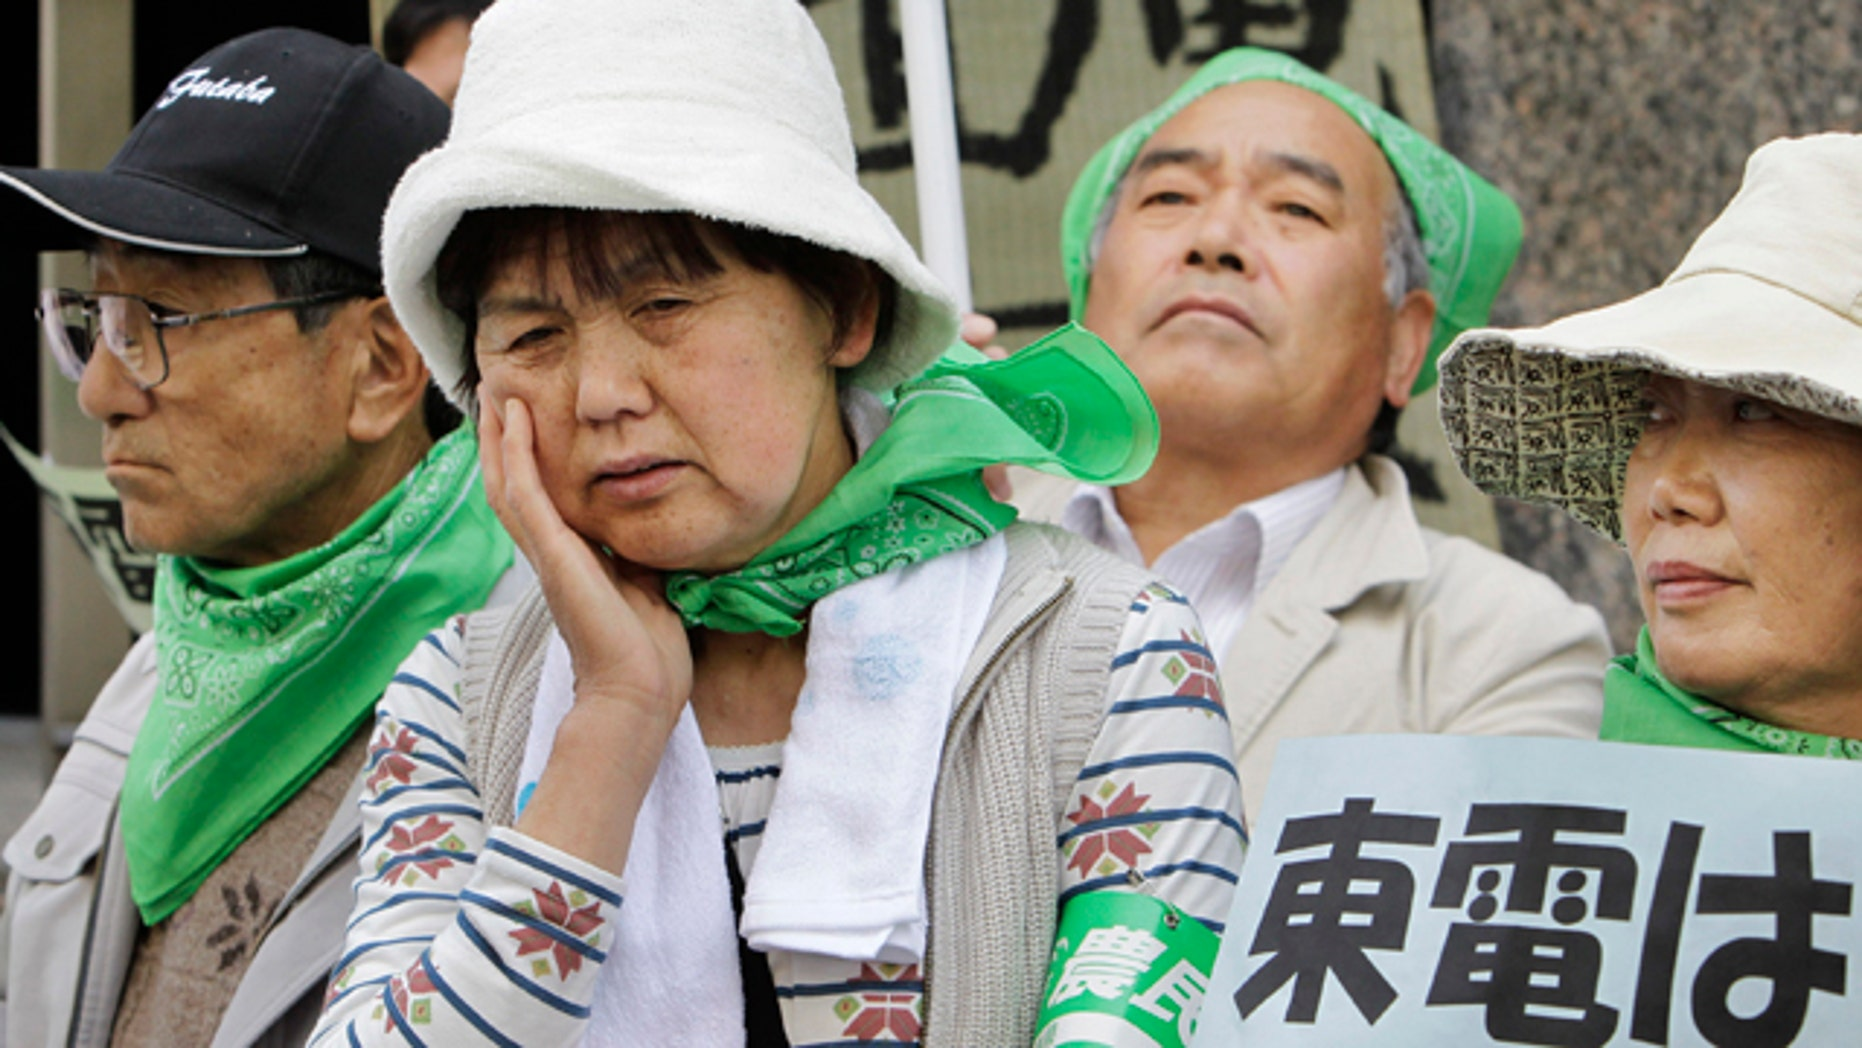 """April 26: Farmers, mostly from Fukushima Prefecture where the tsunami crippled Fukushima Dai-ichi plant is located, hold a protest in front of the Tokyo Electric Power Co. (TEPCO) headquarters in Tokyo Tuesday. More than 200 farmers affected by radiation spewing from the nuclear plant staged a demonstration to demand that TEPCO pays them adequate compensation for loss of income caused by having to leave their farms, or for having produced withdrawn from the market due to contamination fears. The placard at right reads: """"TEPCO, compensate!"""" (AP)"""